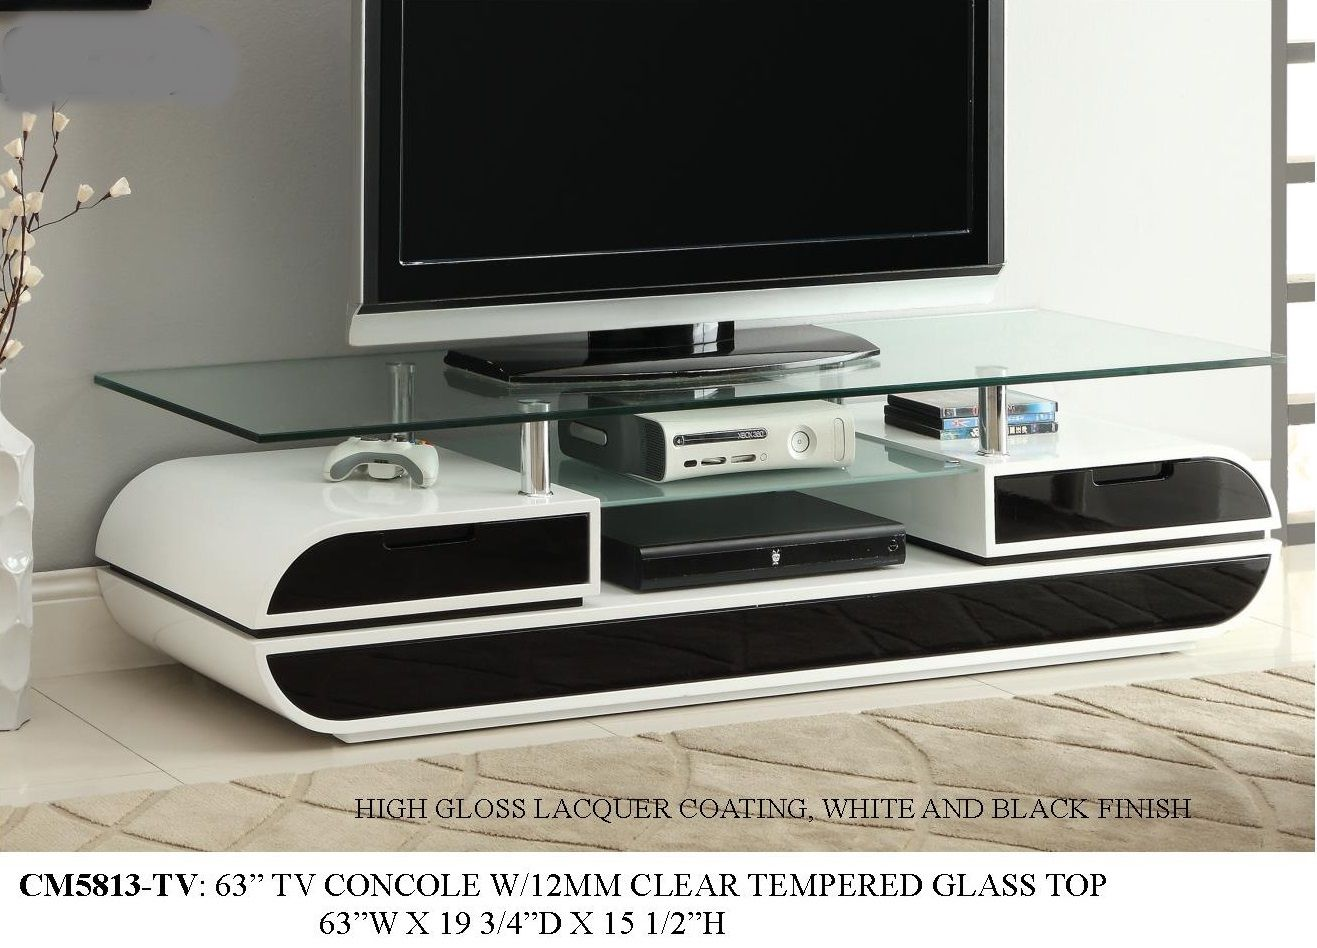 W5813 63 tv stand white and black lacquer finish home decor w5813 63 tv stand white and black lacquer finish geotapseo Image collections